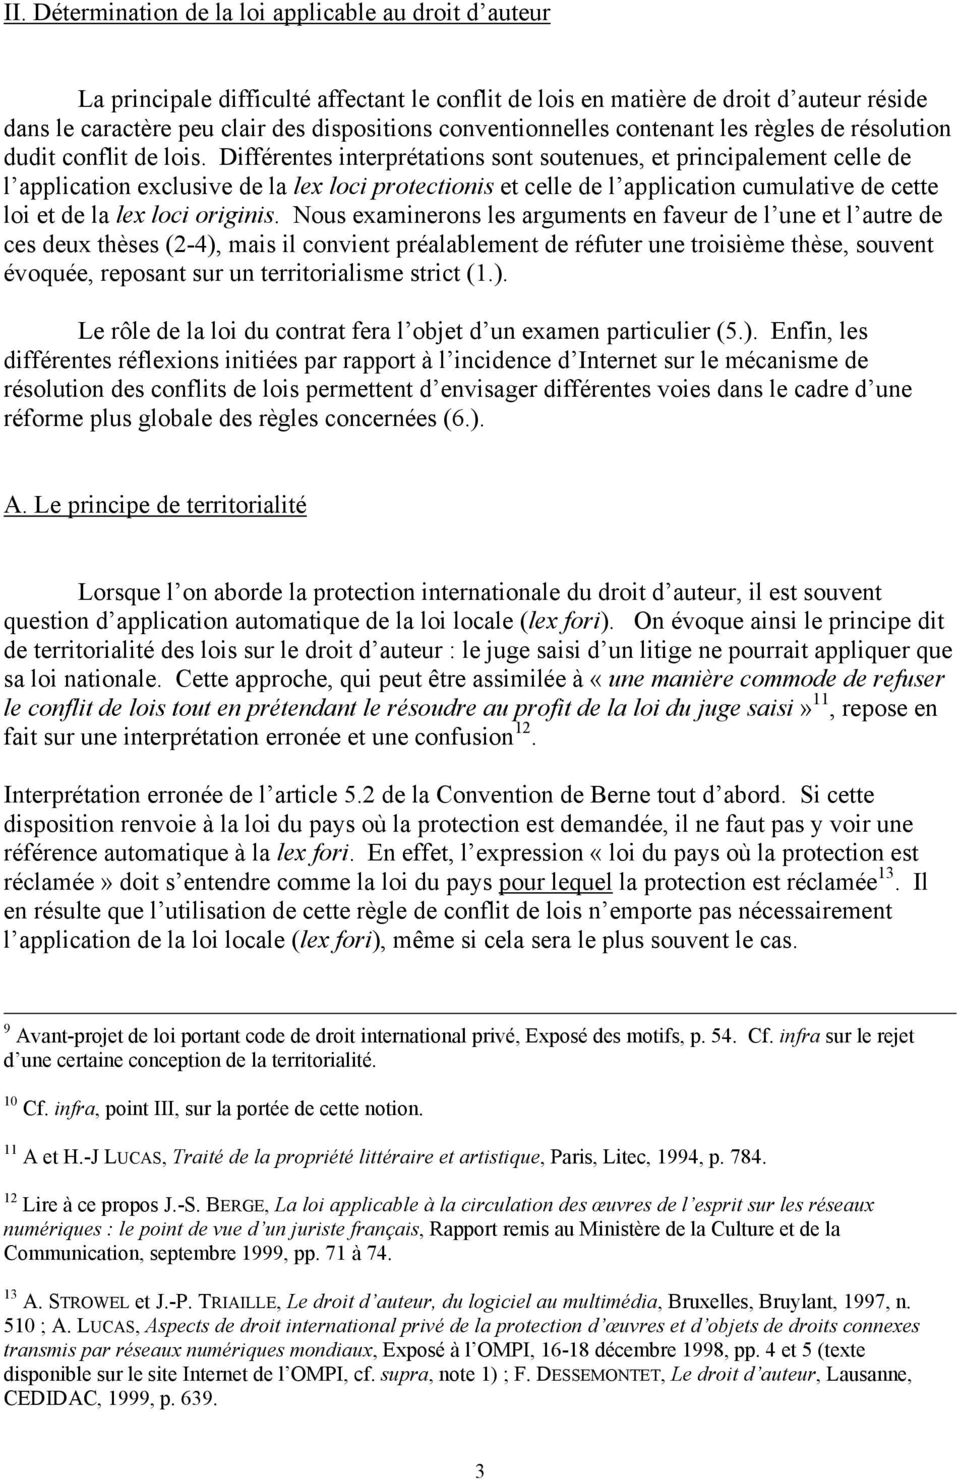 Différentes interprétations sont soutenues, et principalement celle de l application exclusive de la lex loci protectionis et celle de l application cumulative de cette loi et de la lex loci originis.